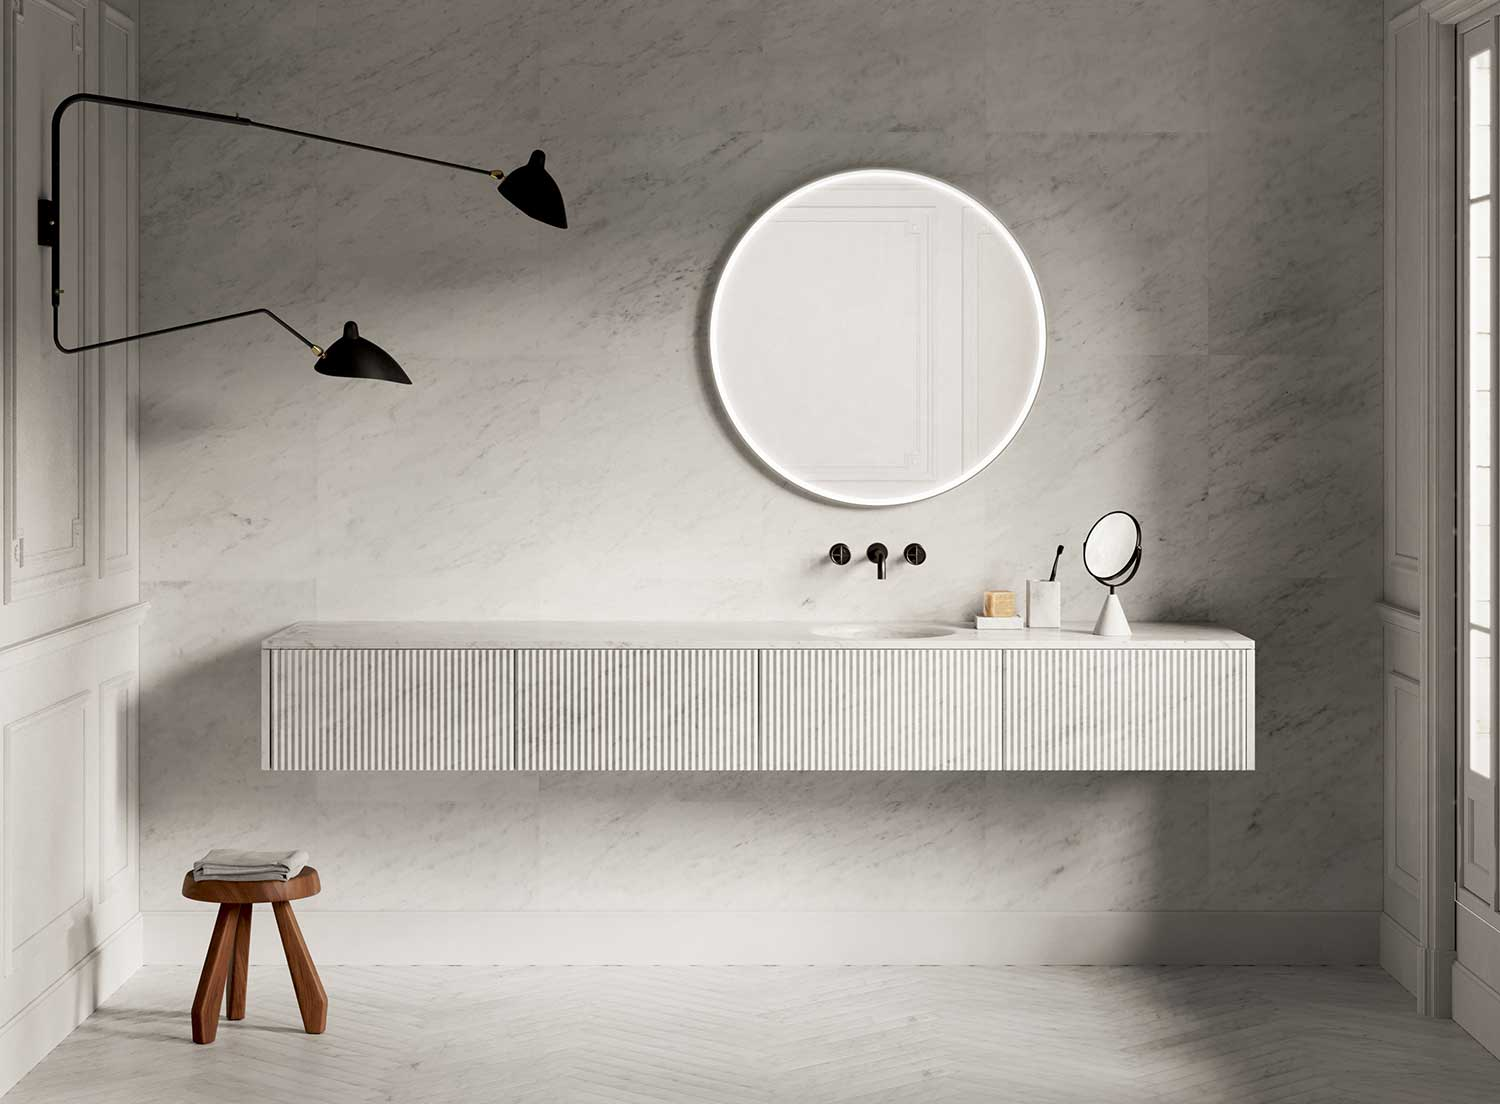 Design Furniture Salvatori Lovli